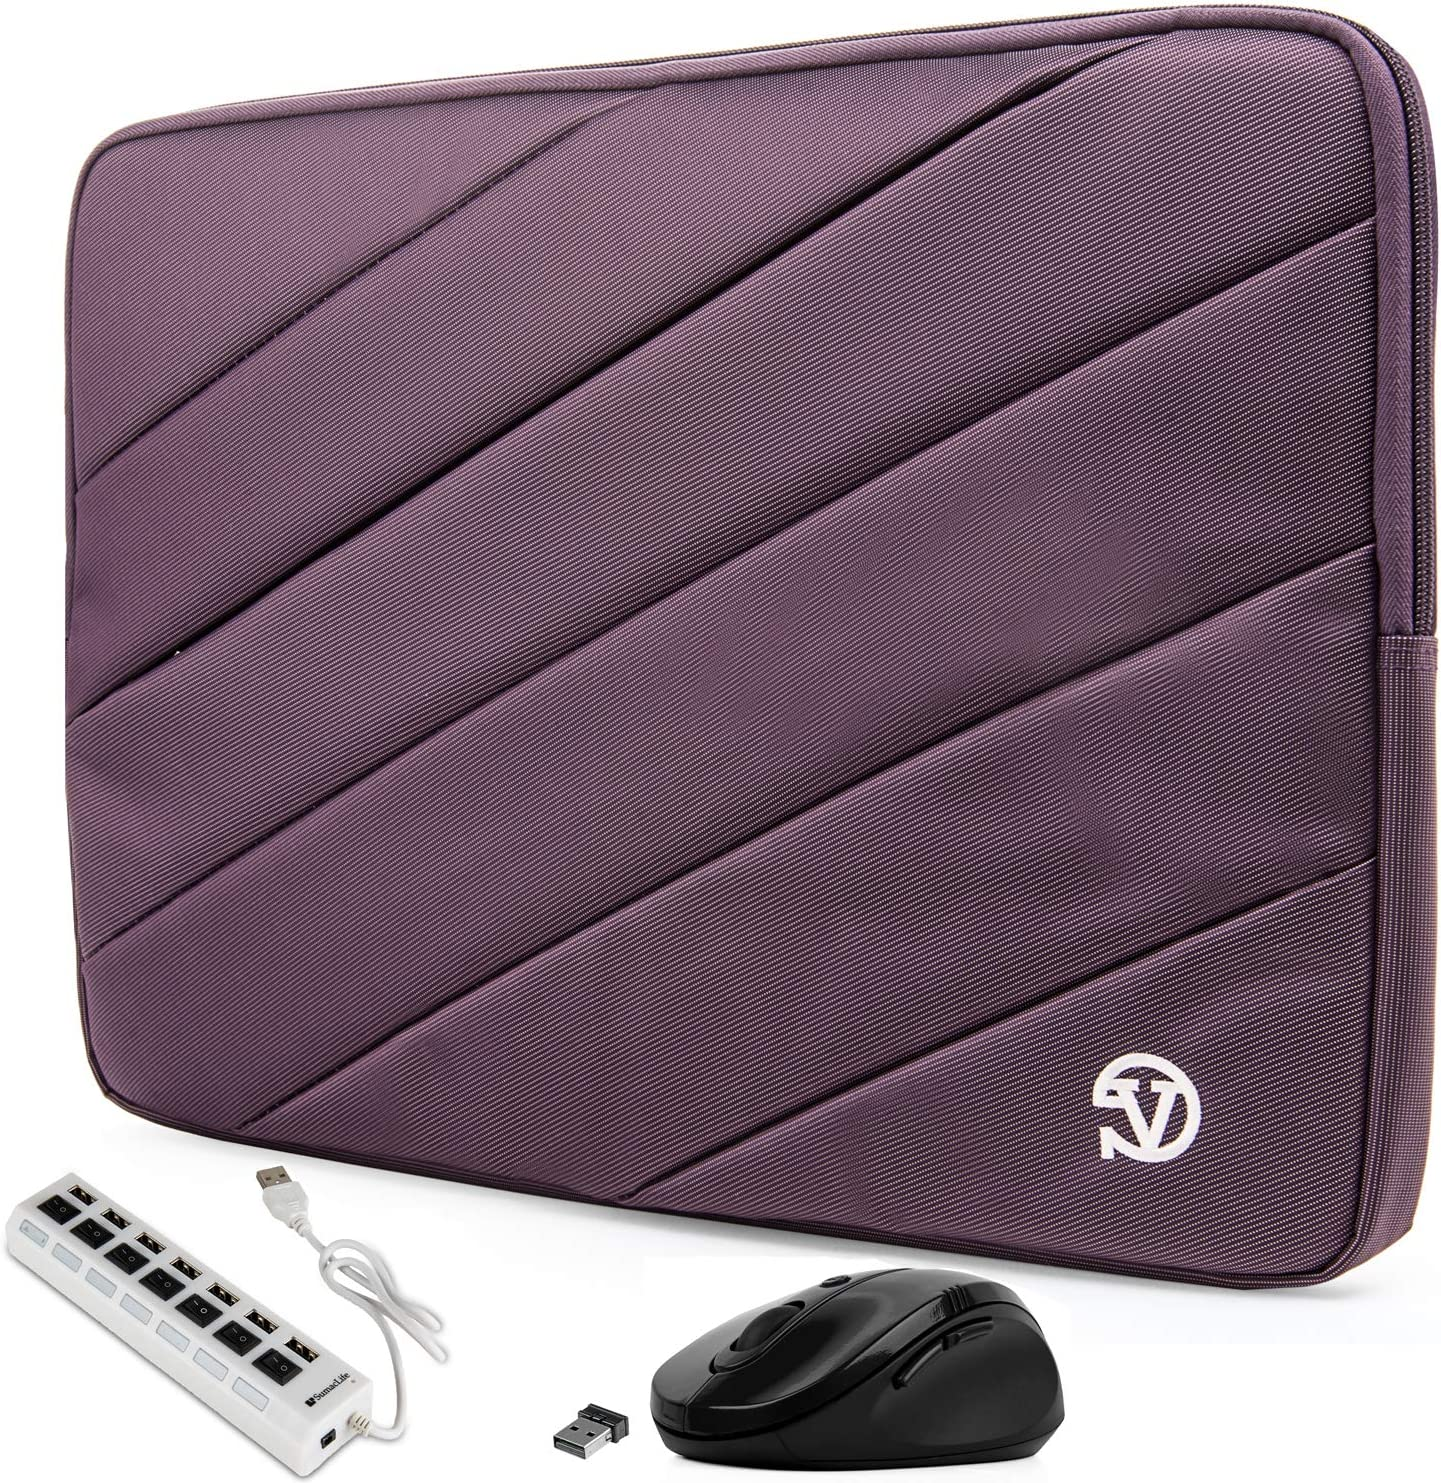 Protective Purple Shock Absorbing Laptop Sleeve for Dell Inspiron, Latitude, XPS, Precision, G3 G5 G7 15, Vostro, Alienware m15, m15 R2 14 to 15.6 inch (Includes USB Hub and Mouse)